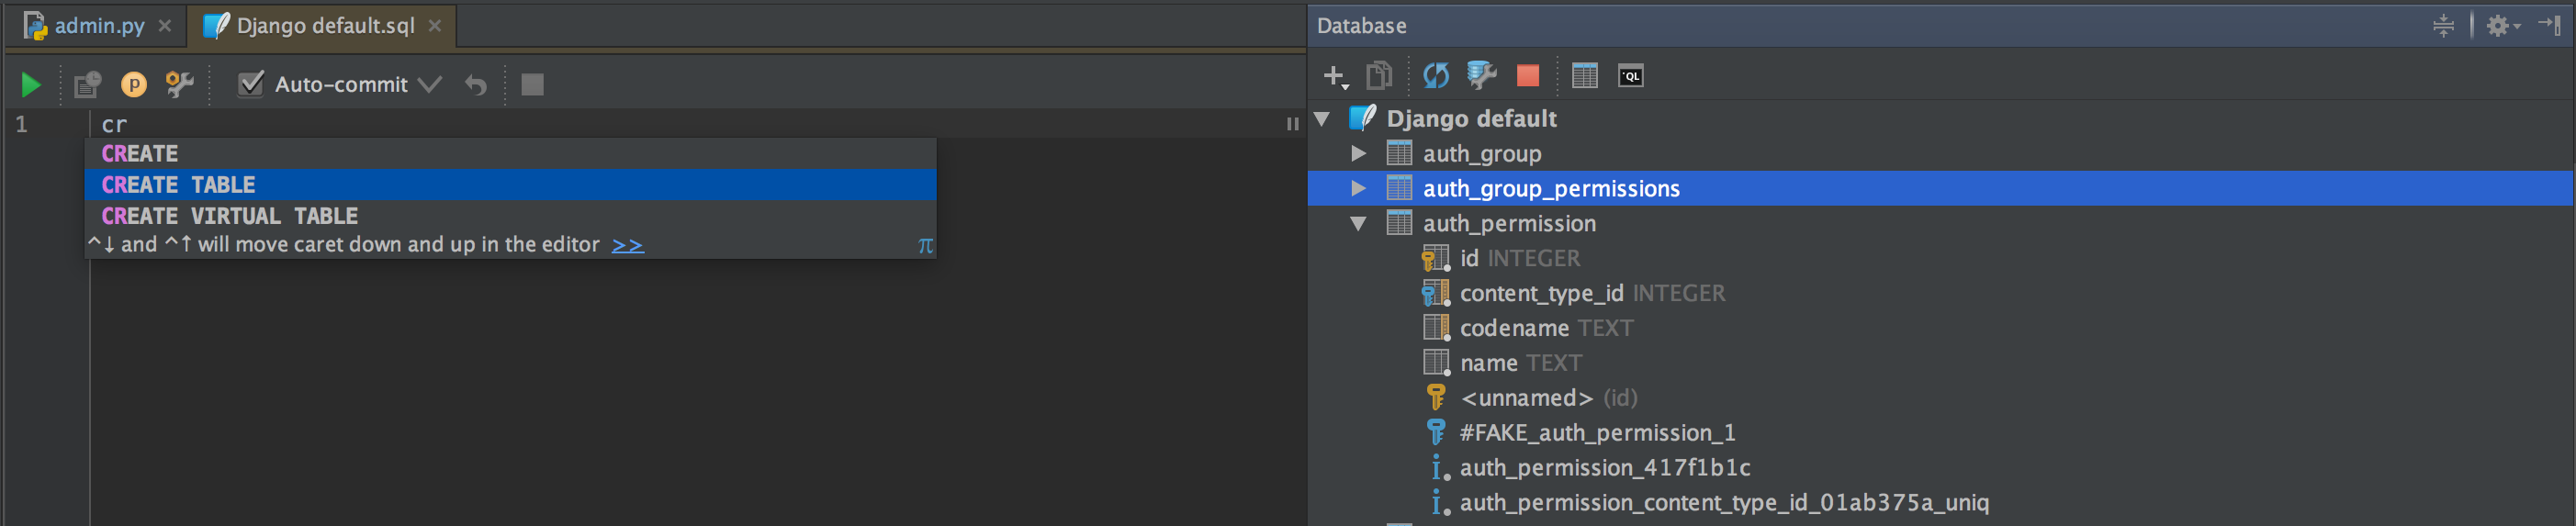 Built-in Developer Tools - Features | PyCharm